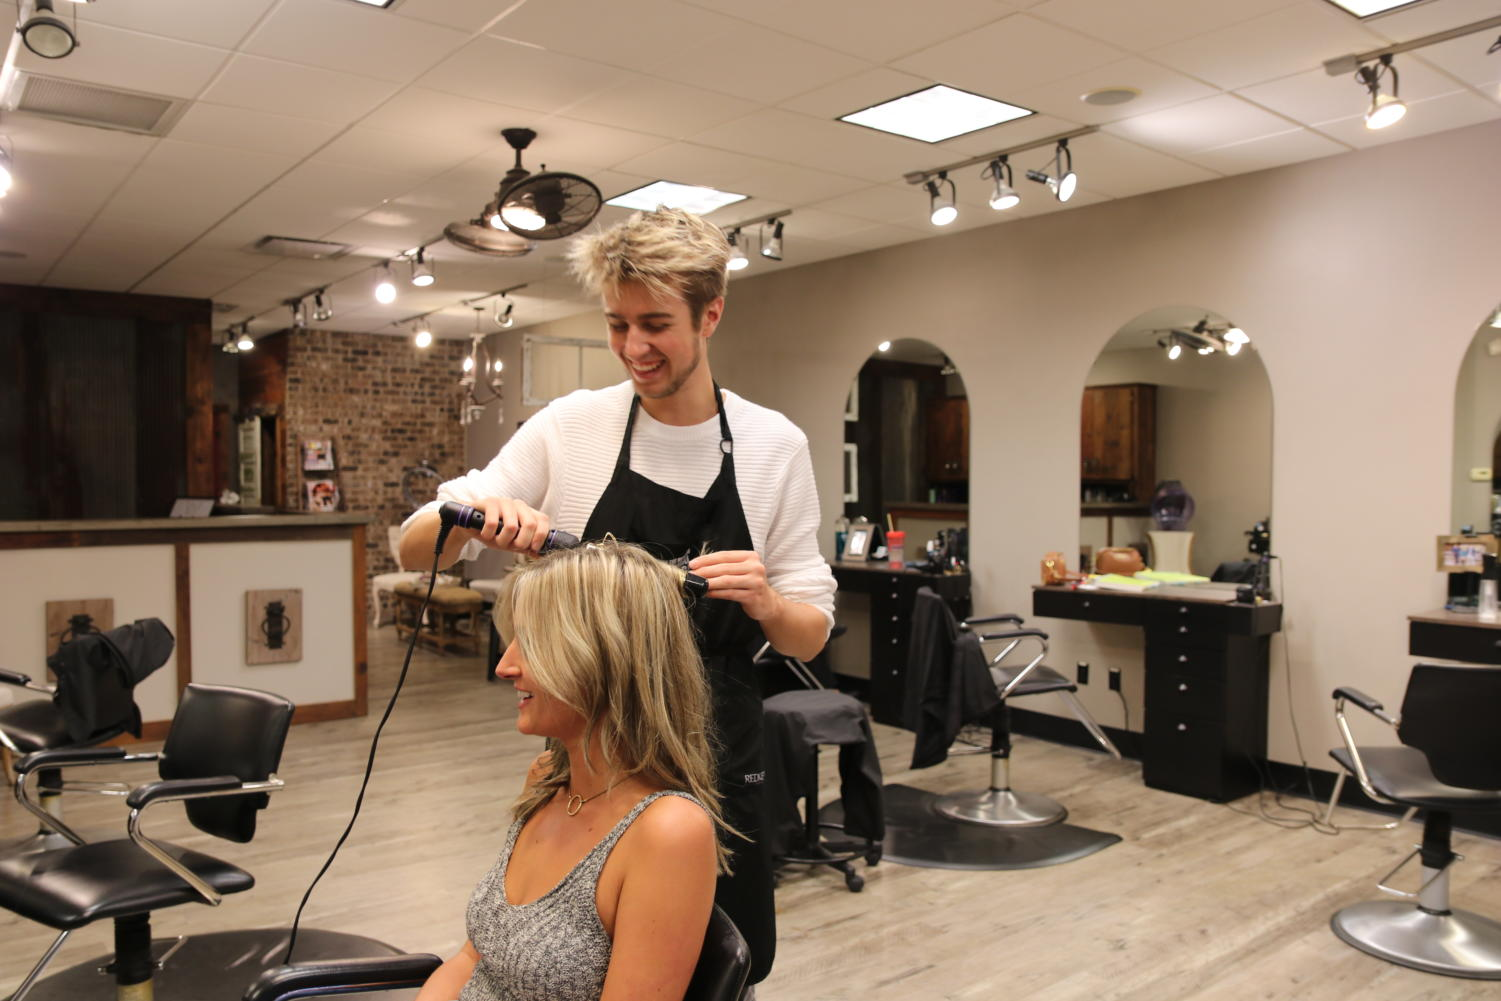 Thomas DeGroot, junior, styles his sister's hair.  DeGroot works as a hairstylist at his mother's hair salon, The Stylist Salon.